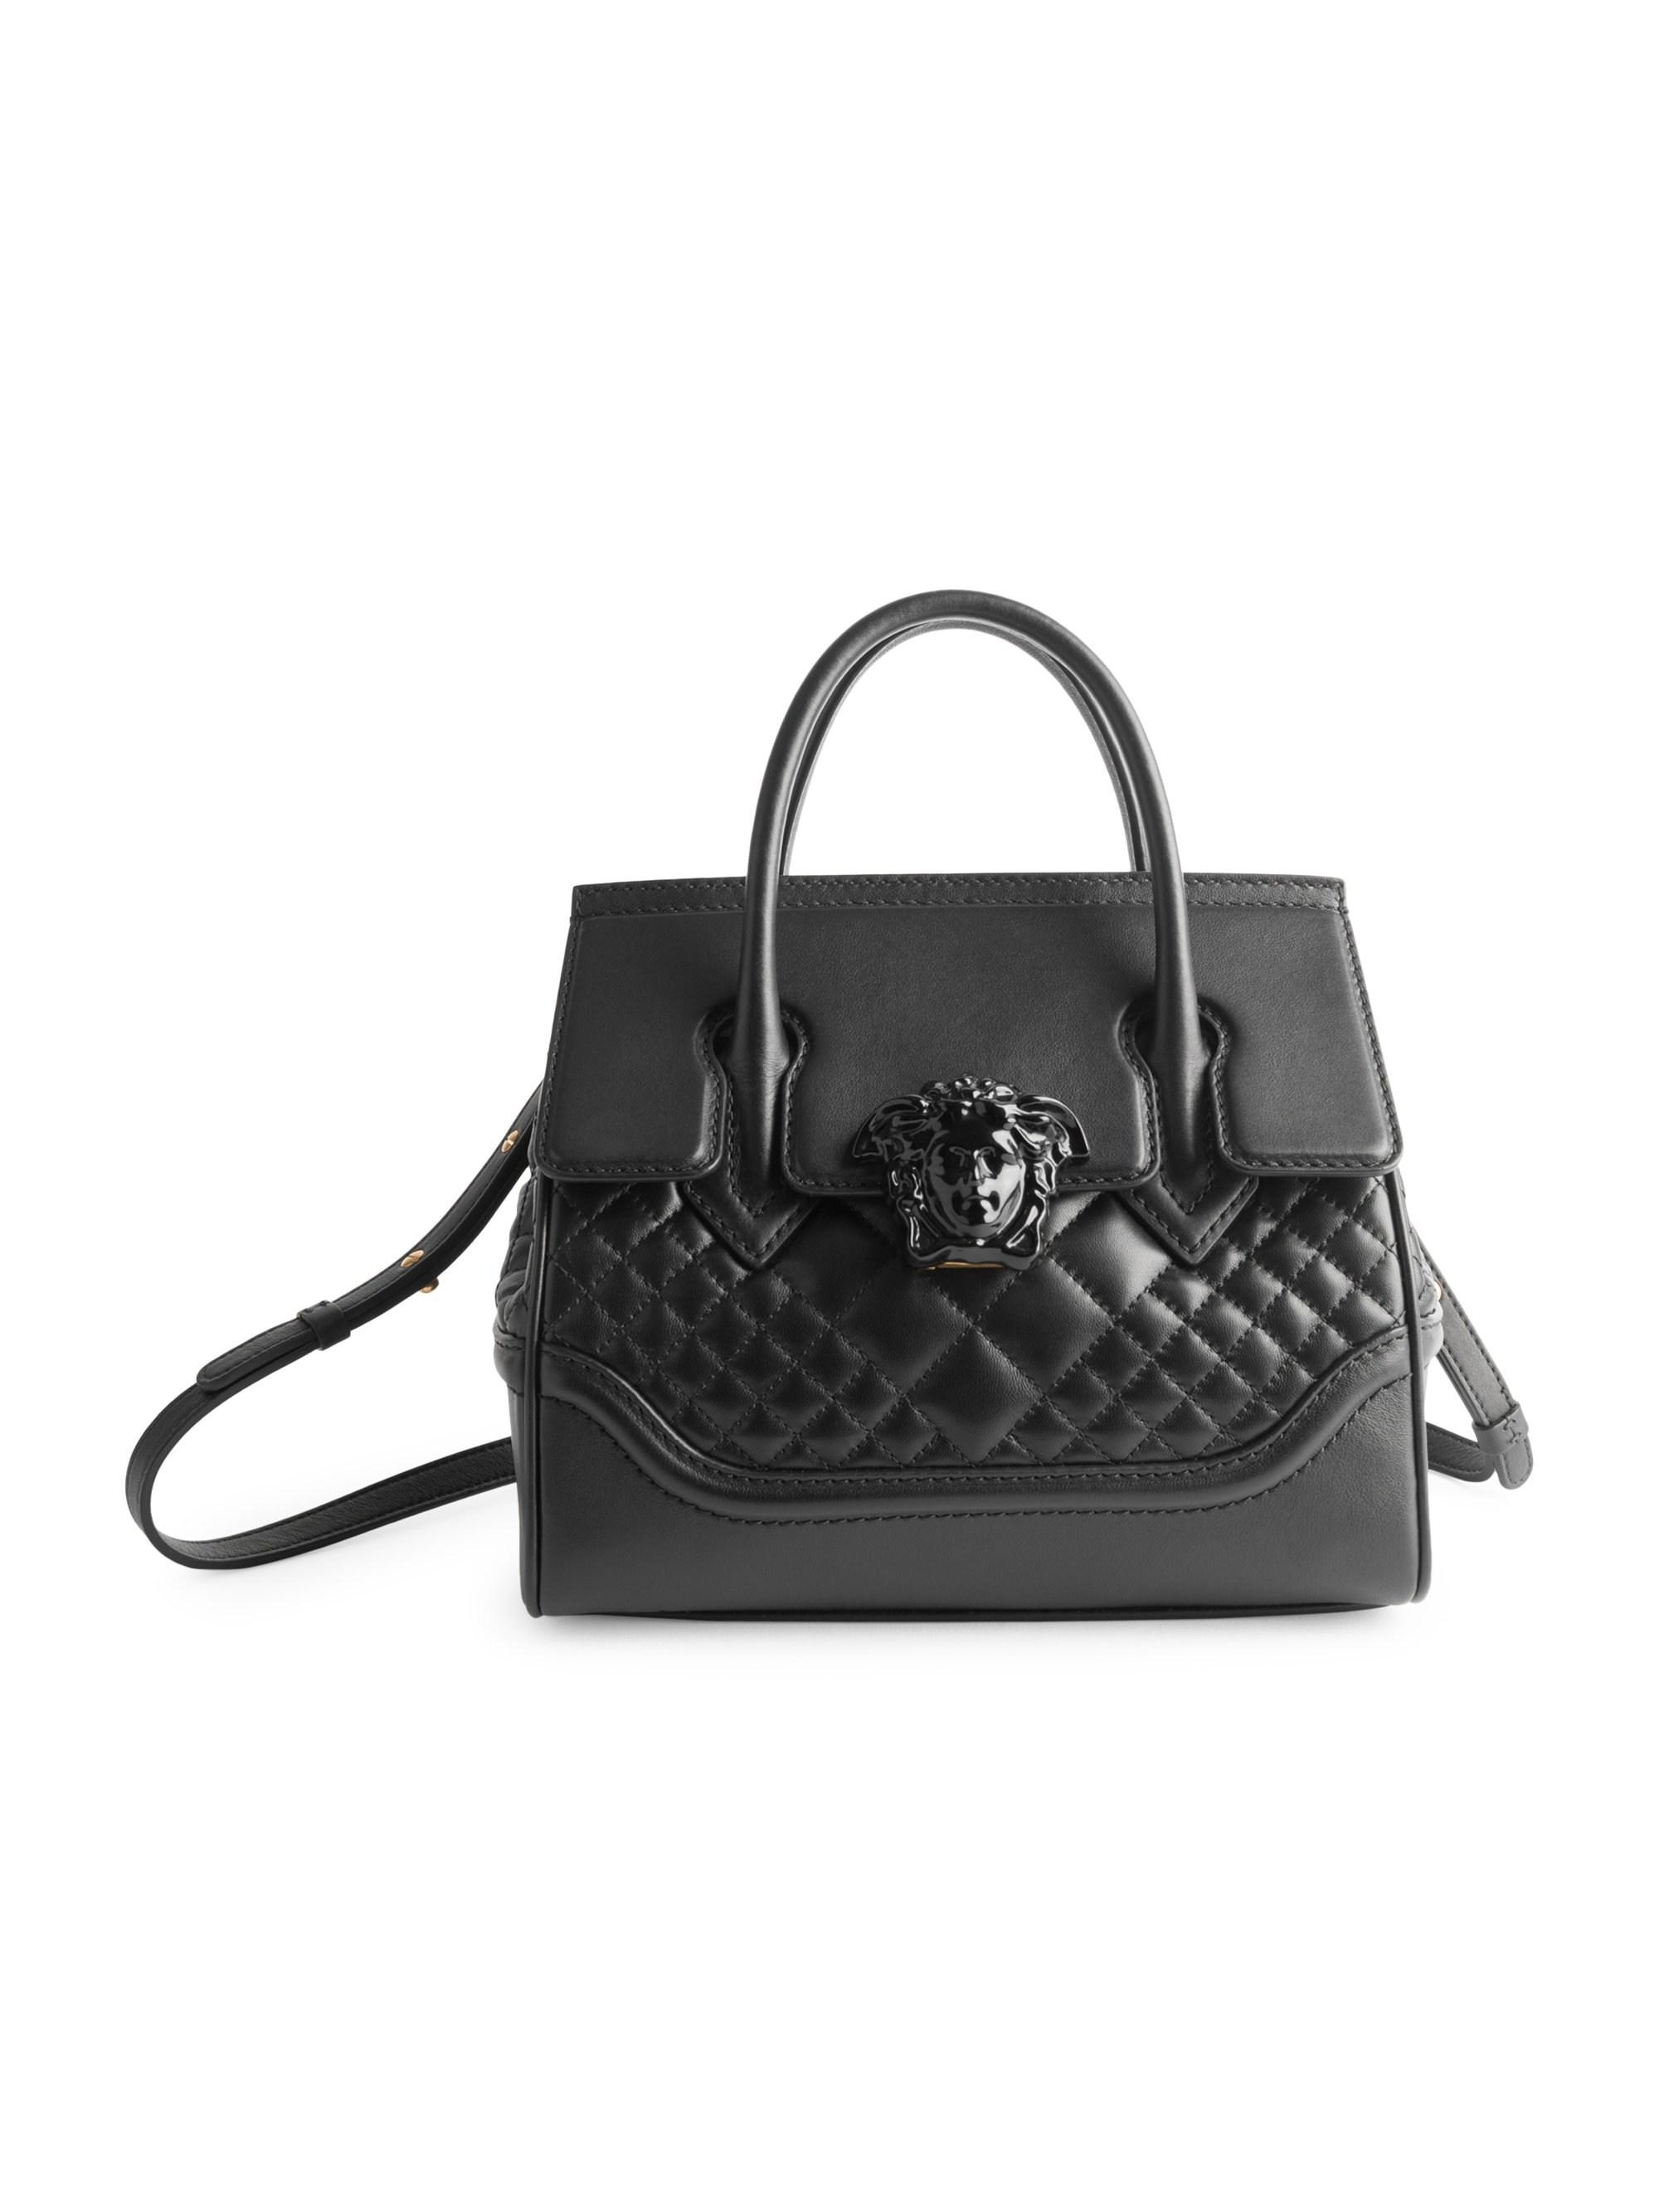 32fb41fb2f99 Lyst - Versace Quilted Palazzo Empire Top Handle Bag in Black